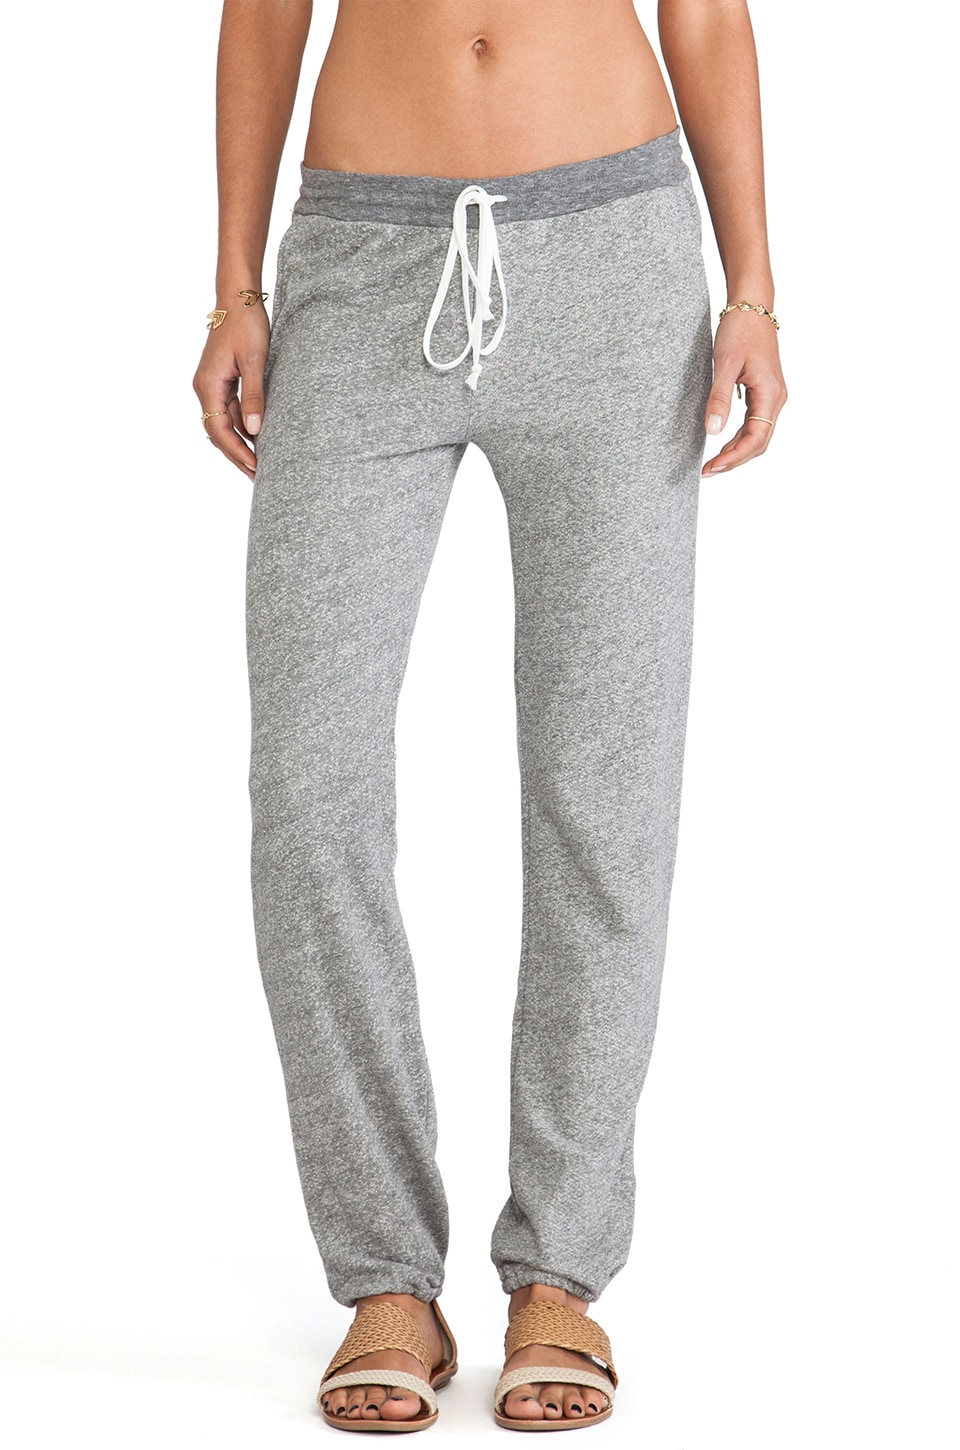 Daftbird Sweatpants in Heather Grey